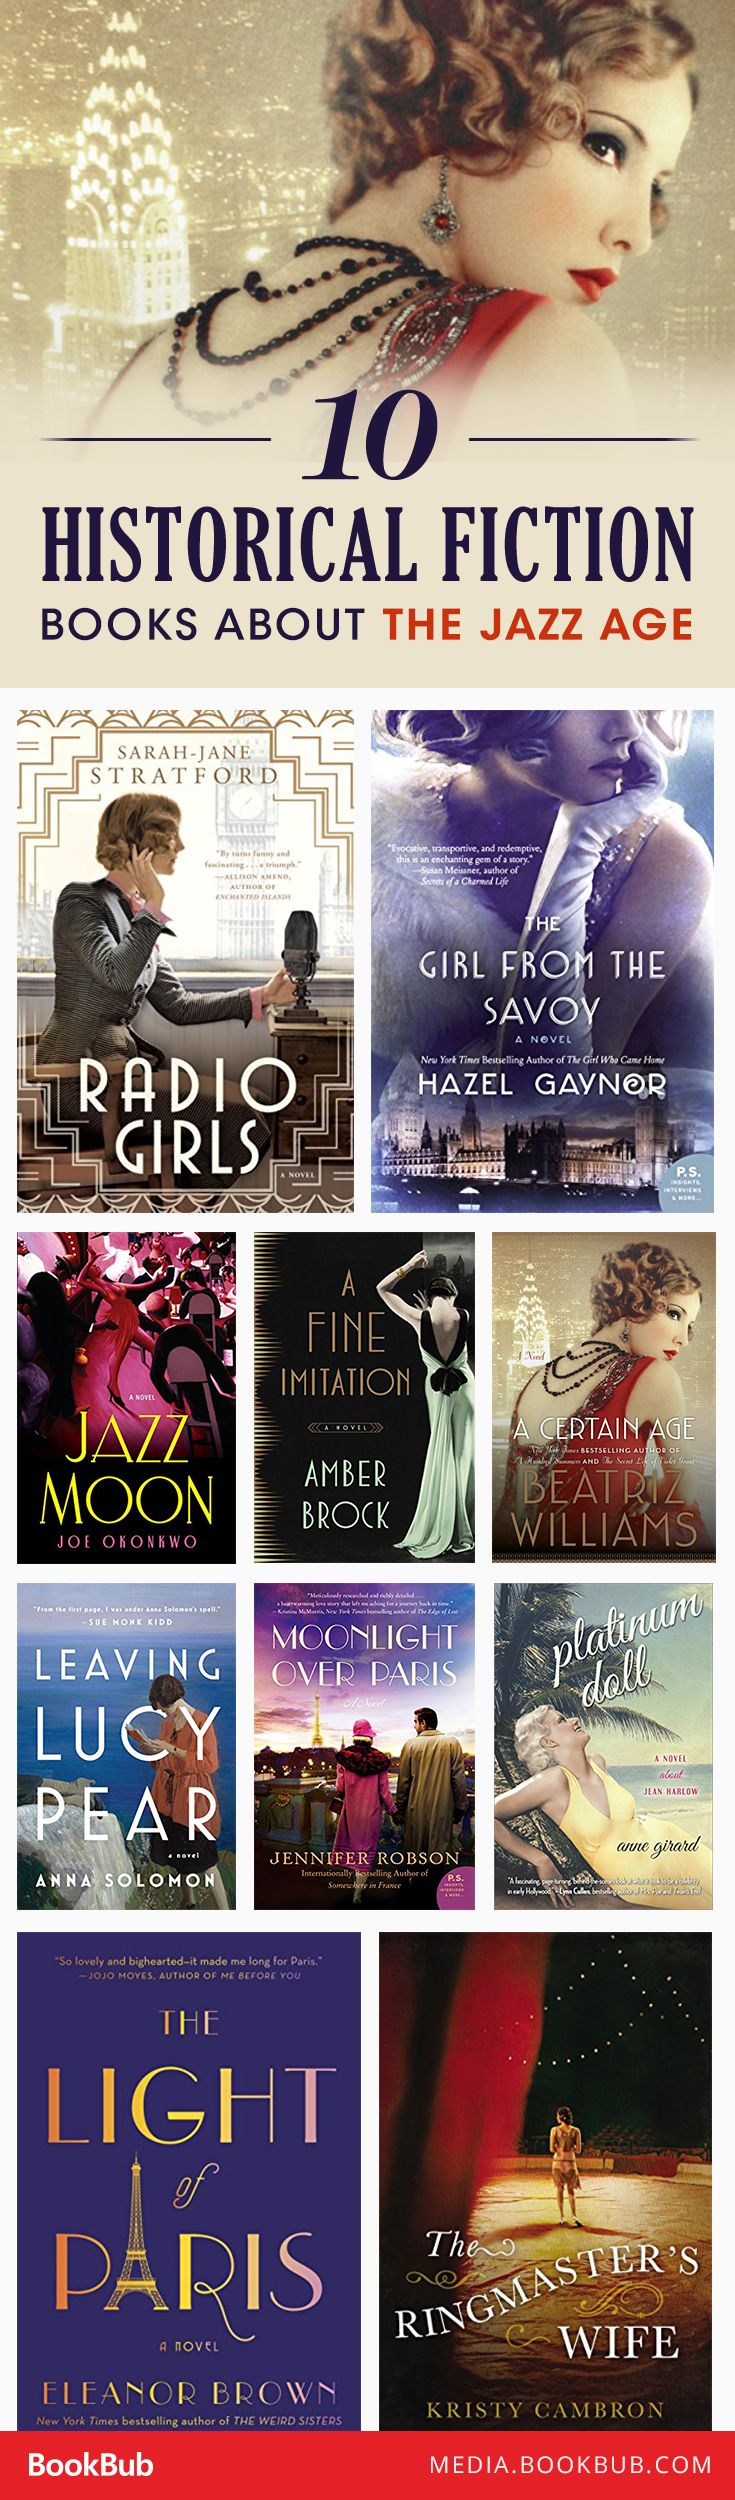 10 historical fiction books about the Jazz Age,                                                                                                                                                                                 More